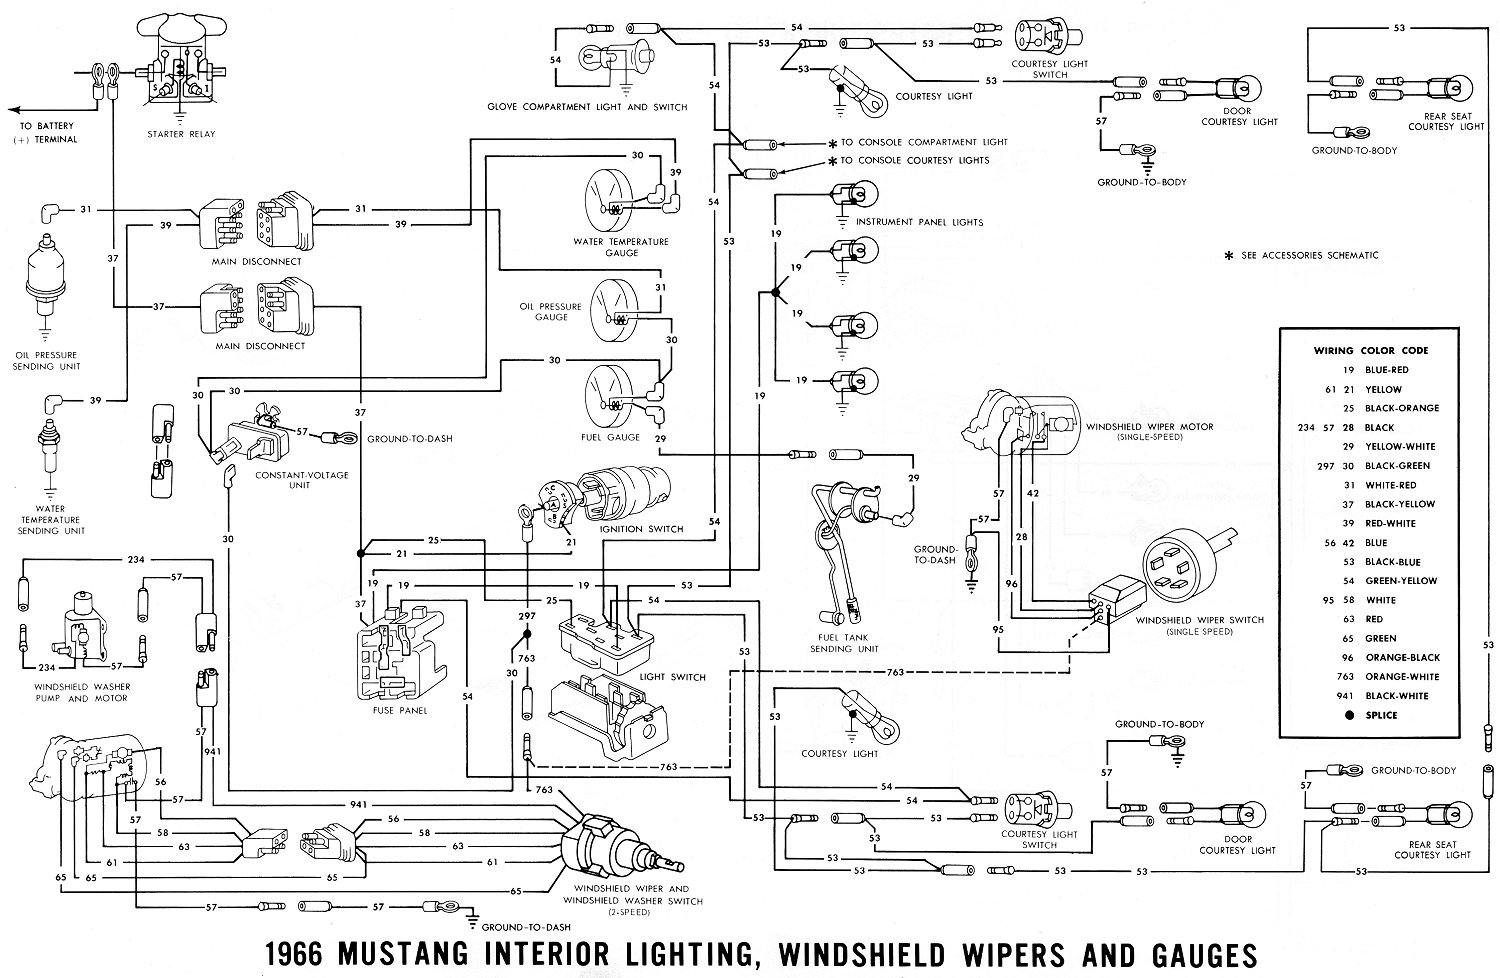 courtesy light wiring diagram for 1966 mustang content resource of 1965  mustang rear brake diagram 1965